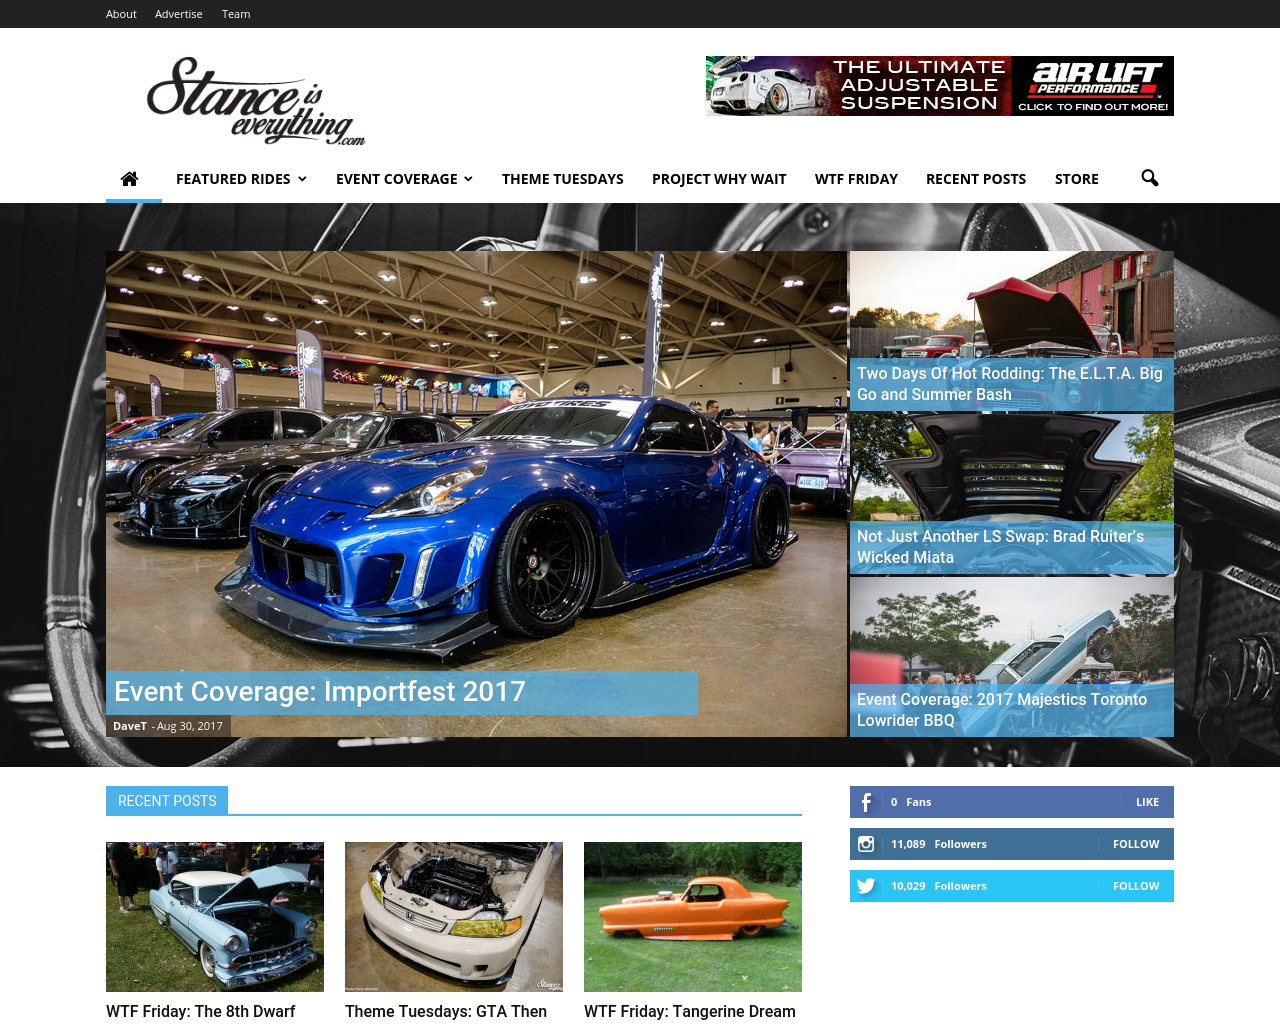 Stance-Is-Everything-Advertising-Reviews-Pricing